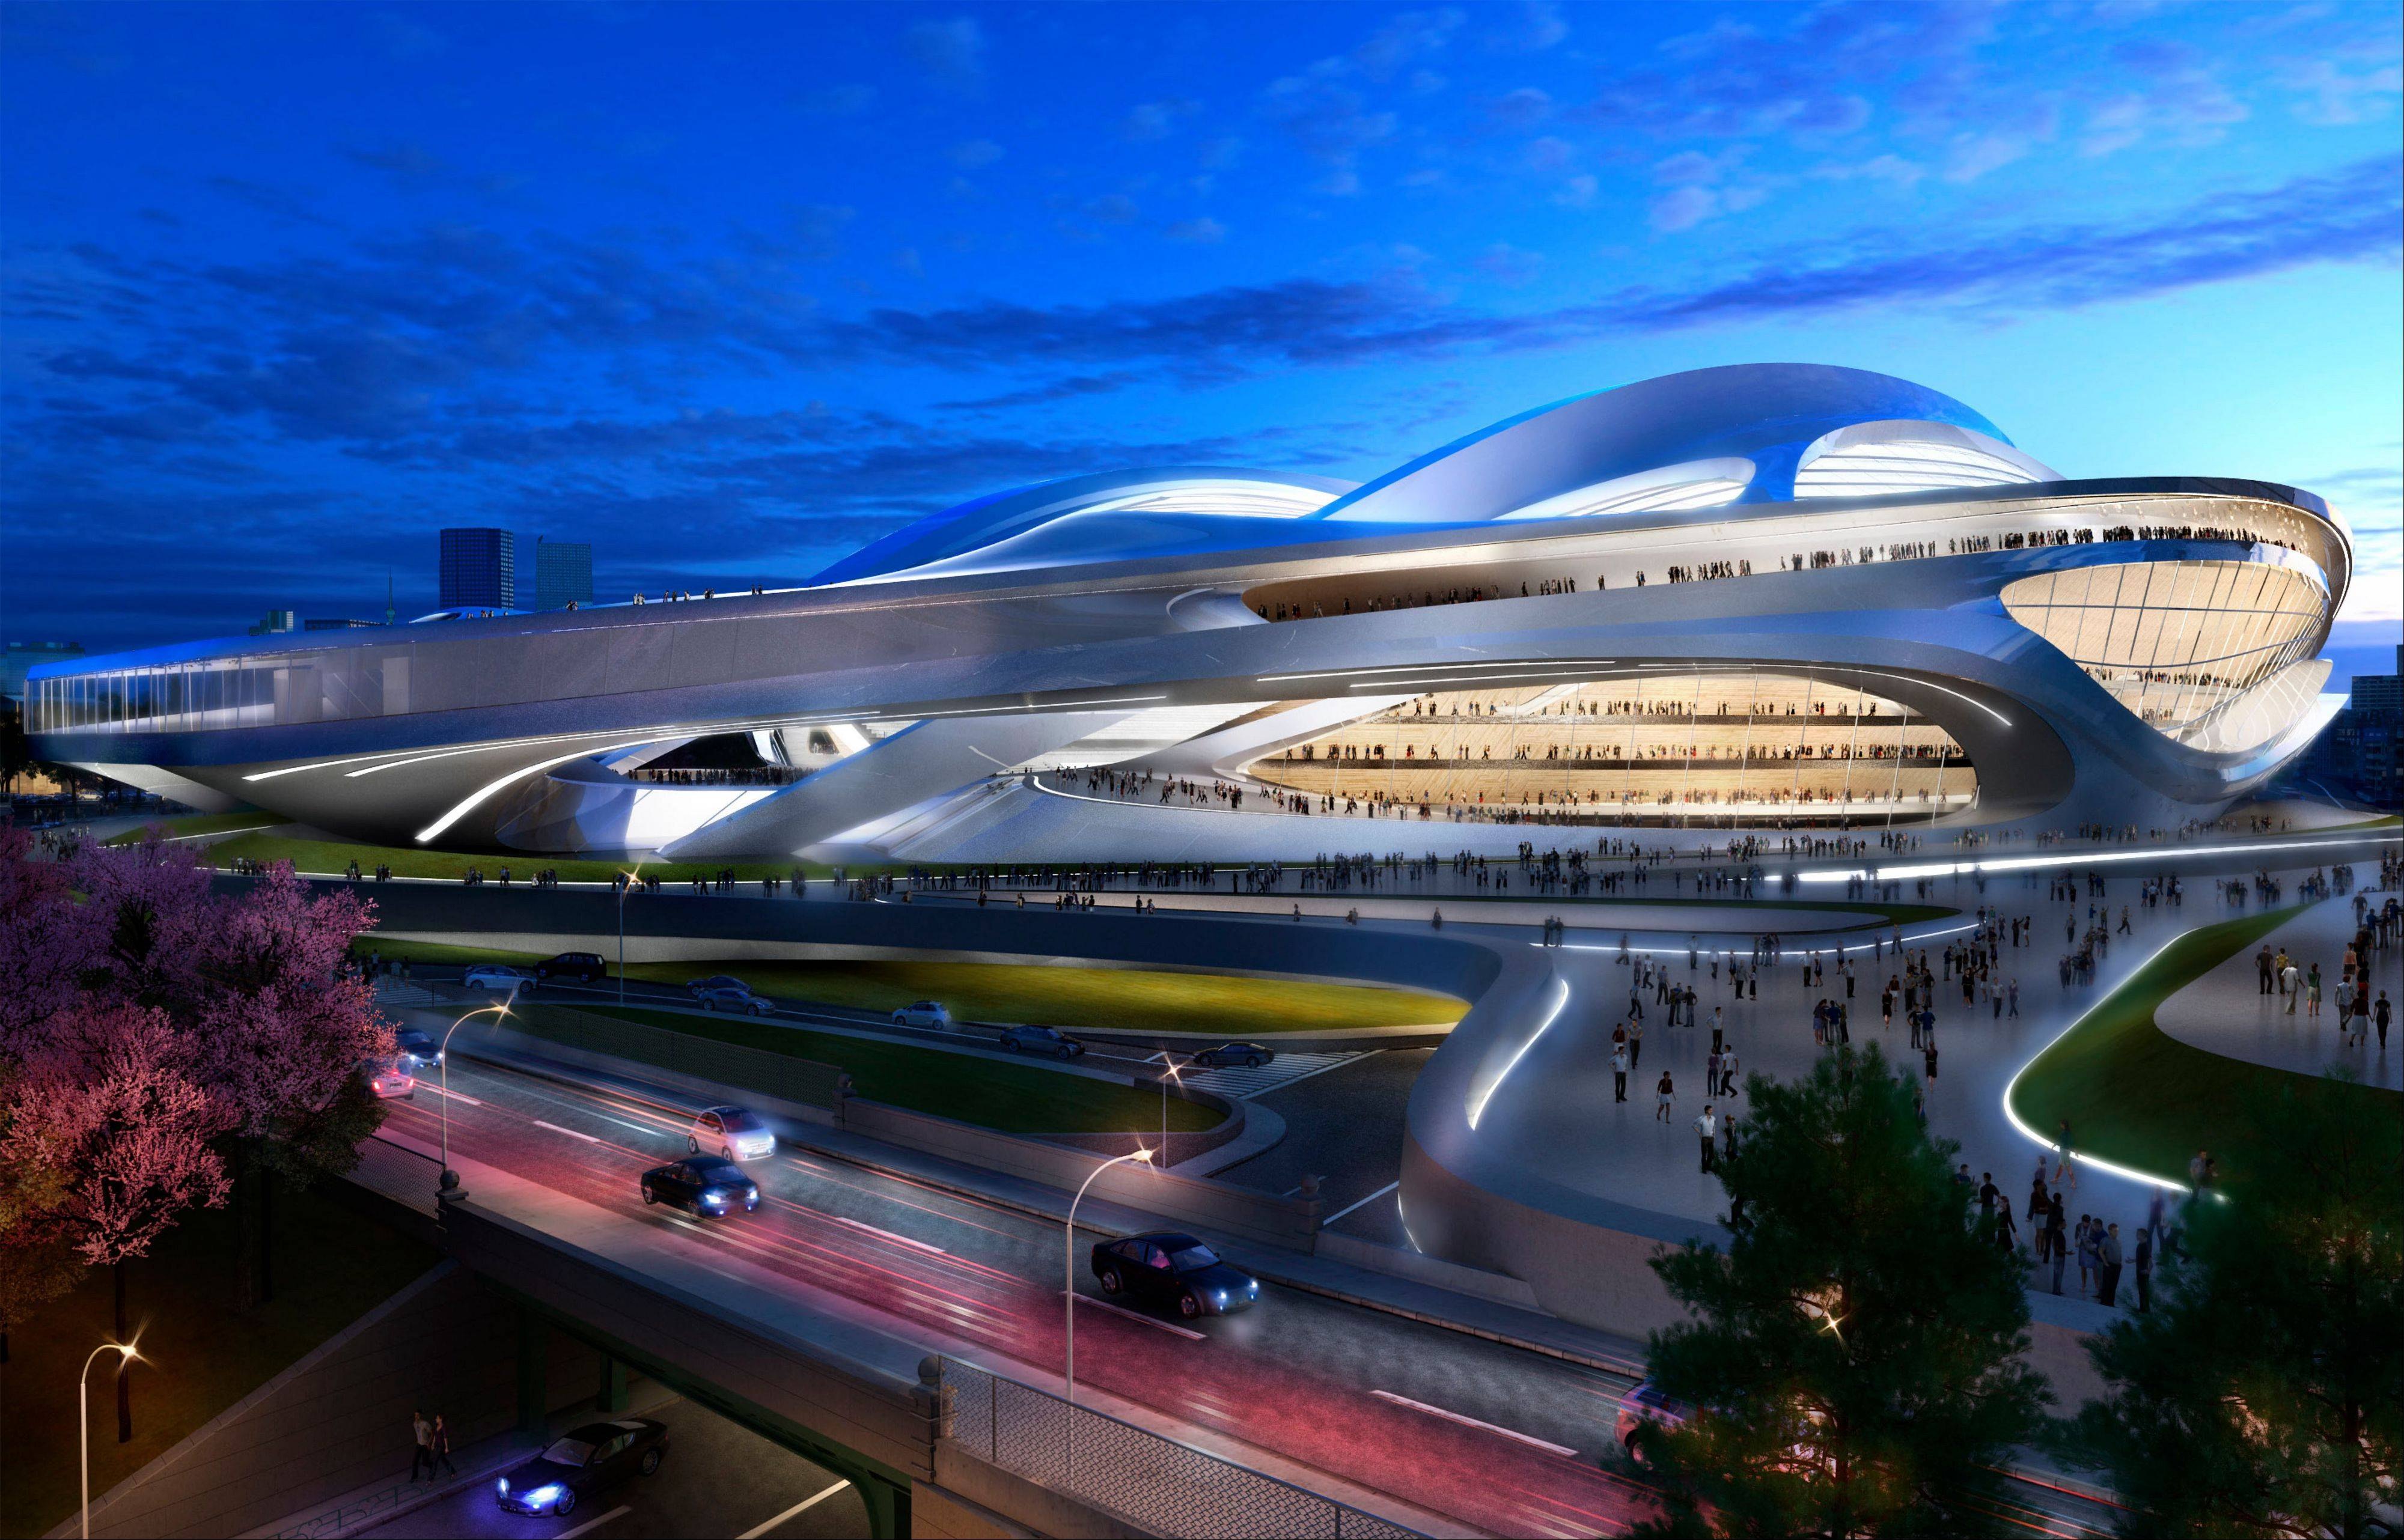 An artist rendering of the new National Stadium, the main venue Tokyo plans to build for the 2020 Tokyo Olympics. A prominent Japanese architect is campaigning to reduce the size of the spaceshiplike main stadium approved for the Olympics, saying it�s too expensive and would clash with its surroundings.